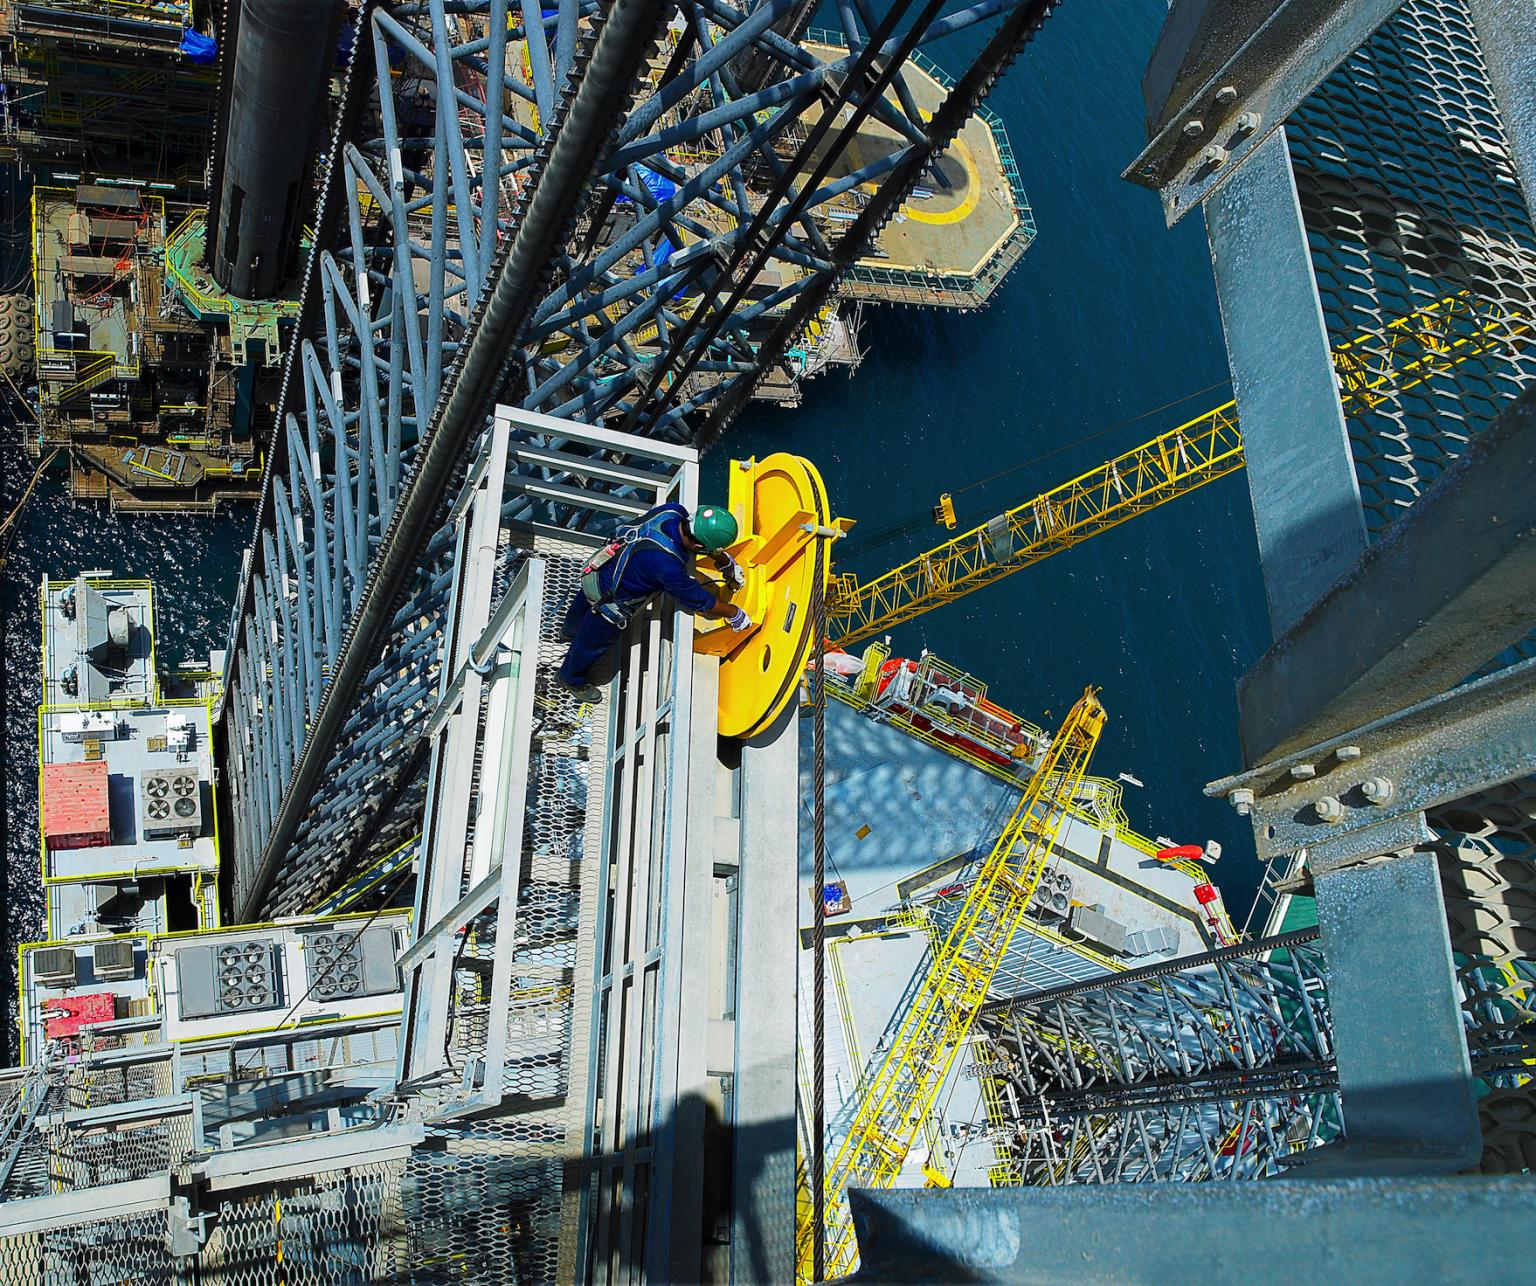 Guidance from fall protection specialists can help to make working at height less dangerous